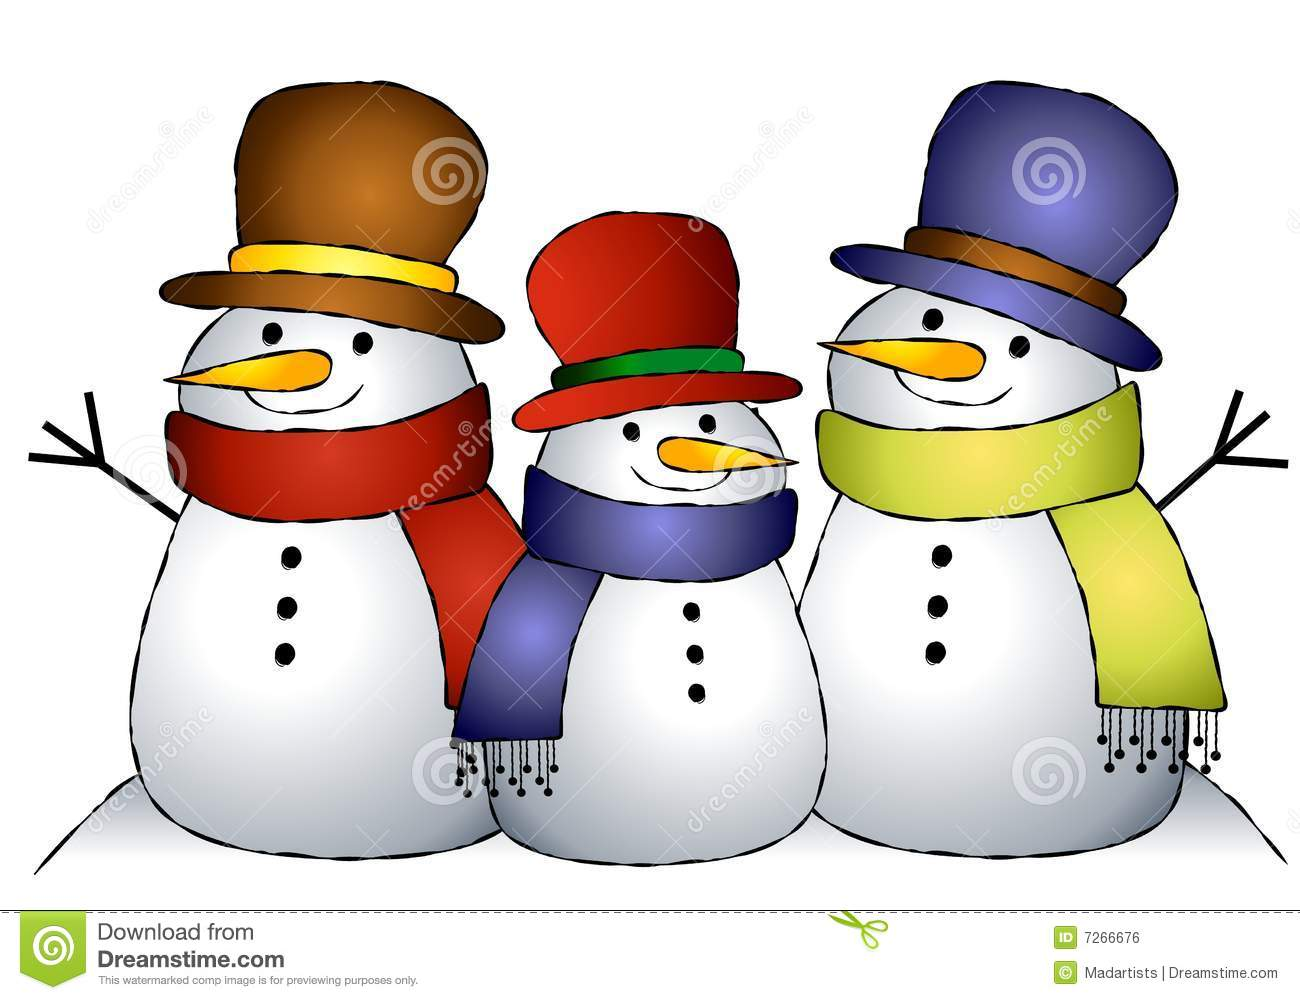 An illustration featuring a group of 3 snowmen huddled together.